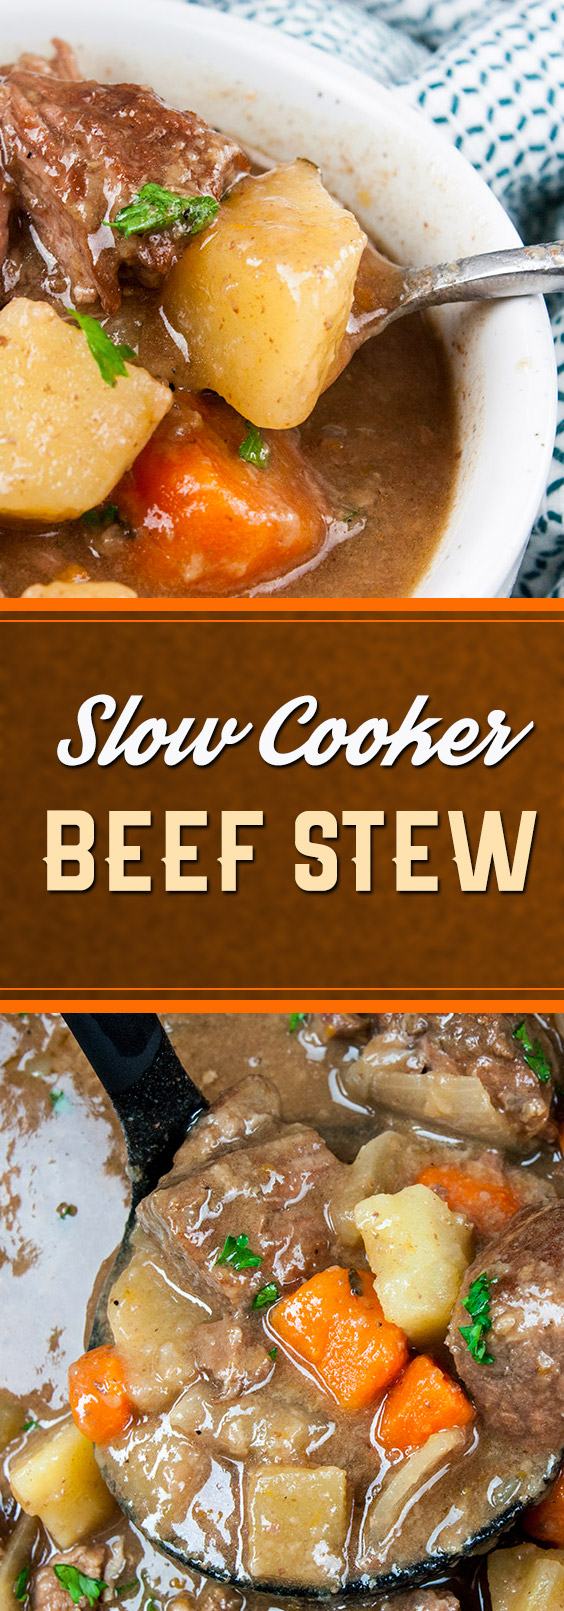 Thick, creamy, flavorful comfort food from your slow cooker! Who doesn't love to prepare a delicious meal while completing your other daily tasks?